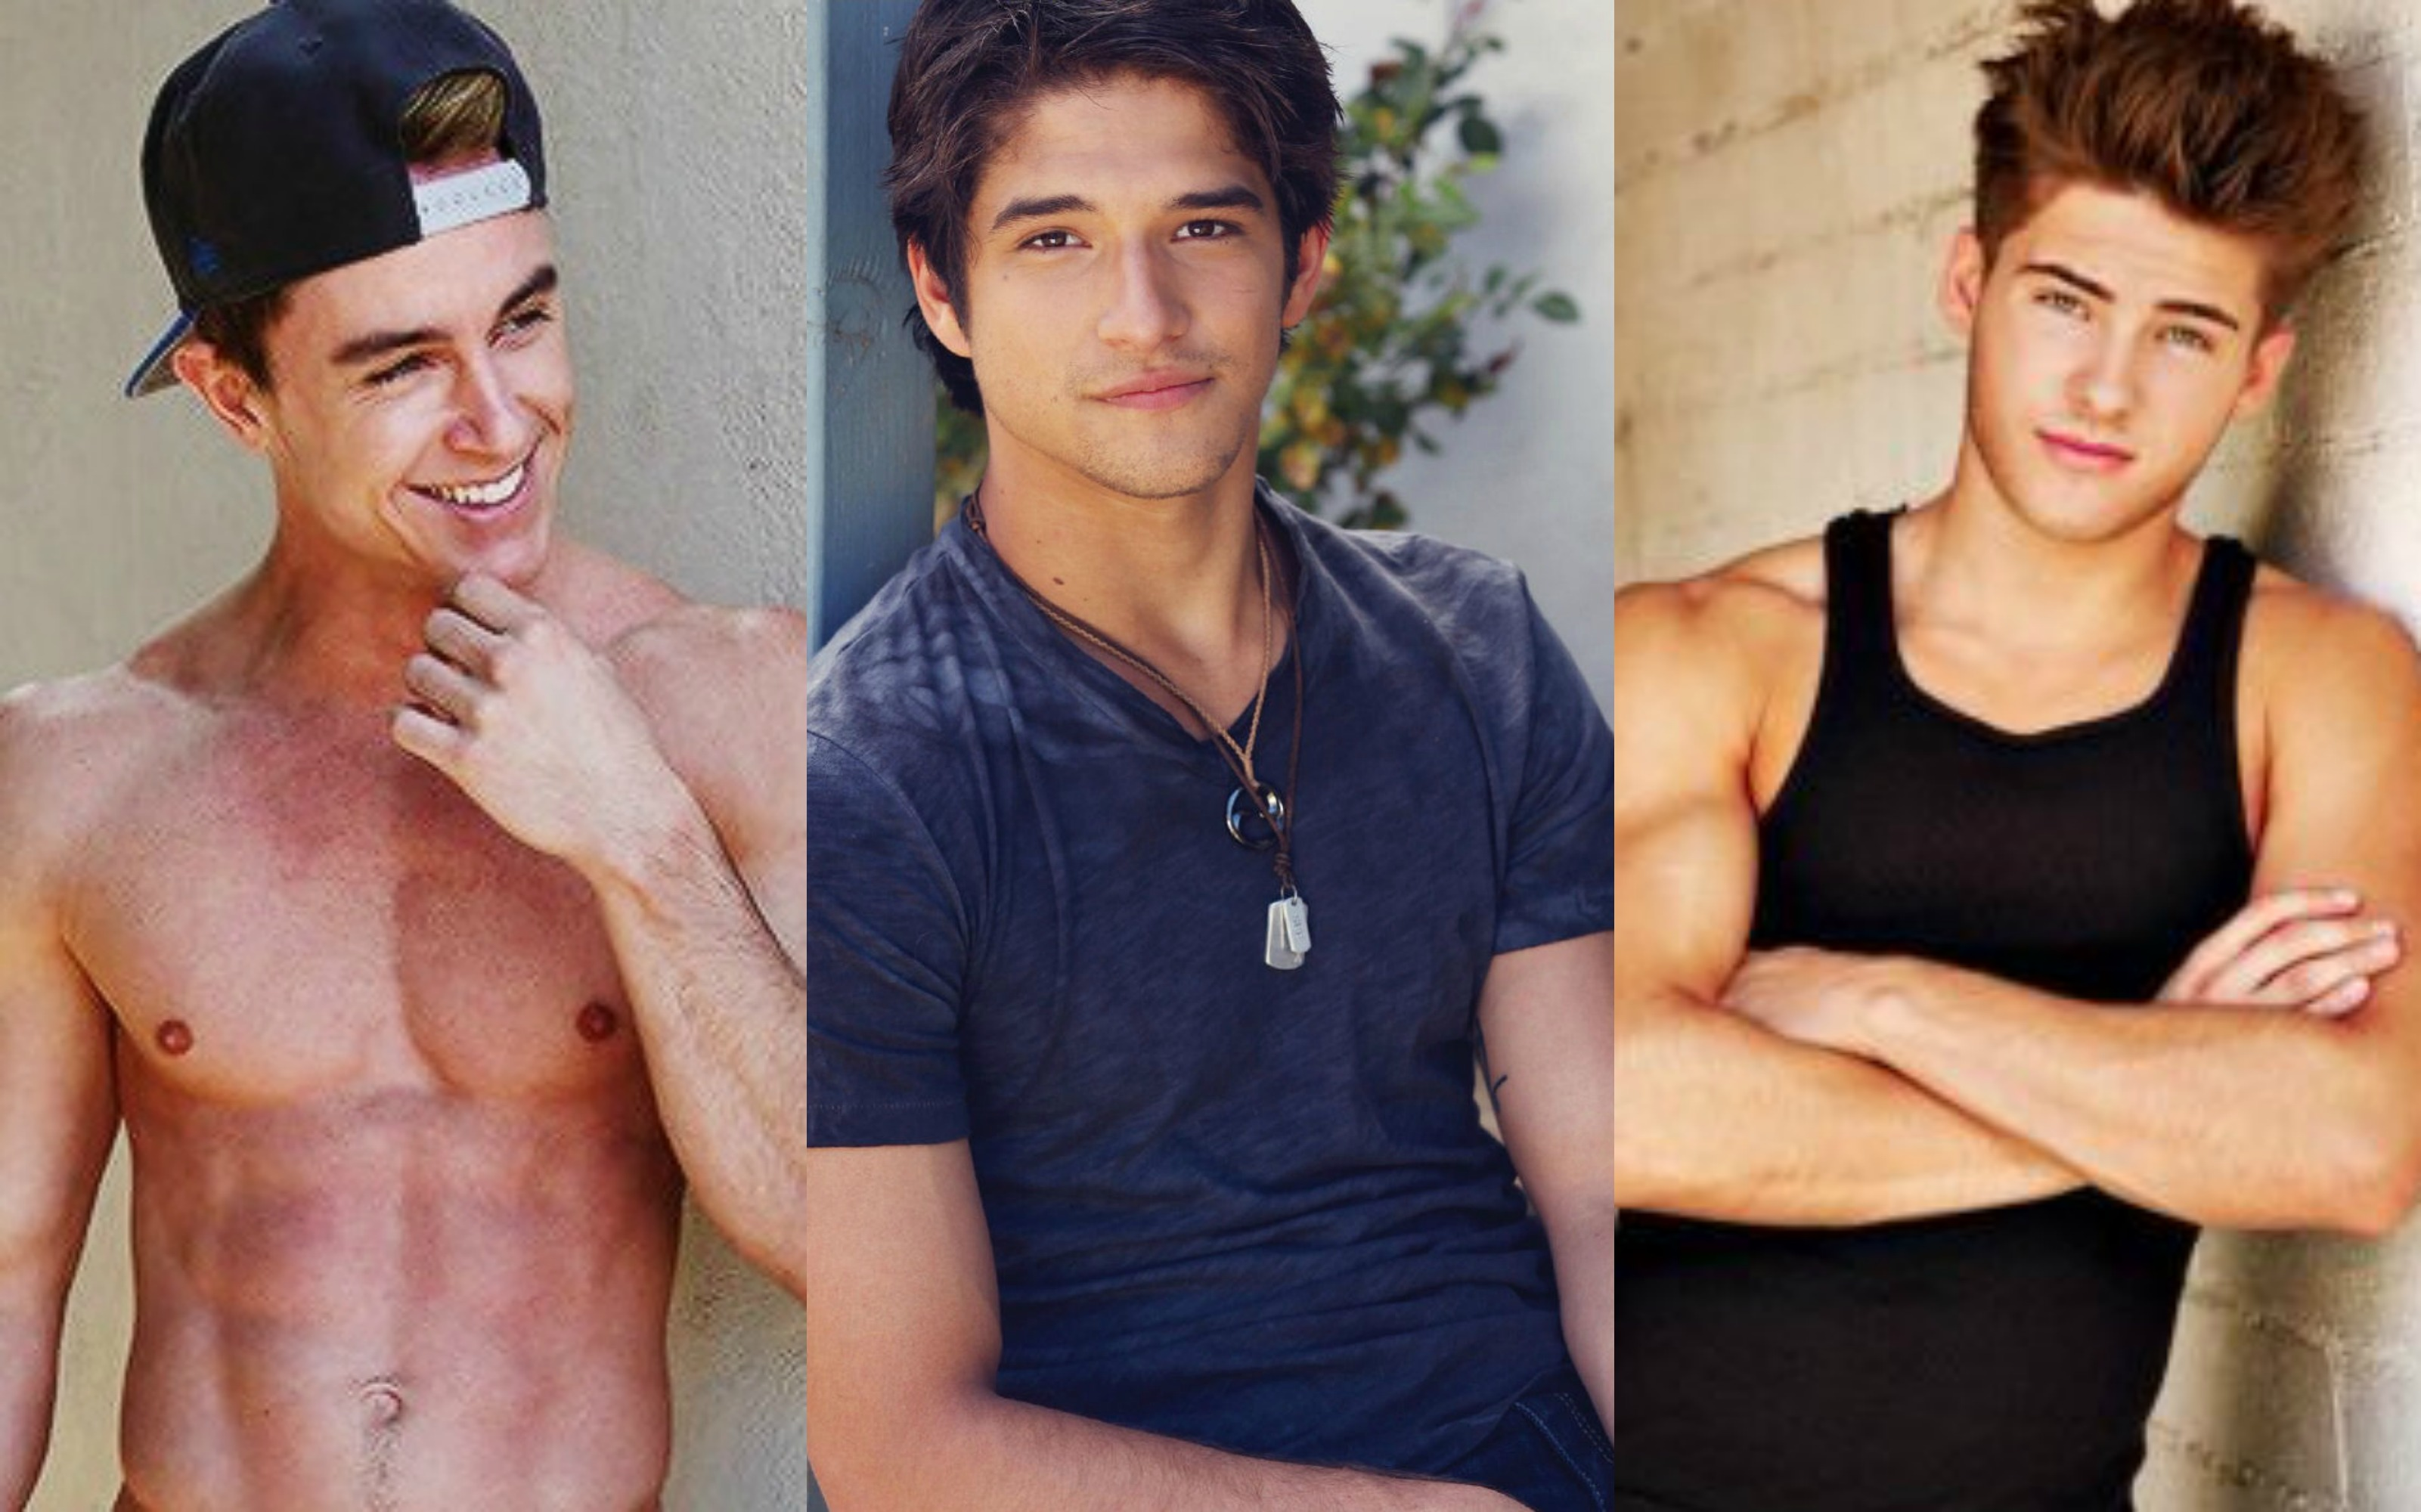 GOSSIP: Nobody on the Set of 'Teen Wolf' is Safe from Online Naked Hackers [NSFW]